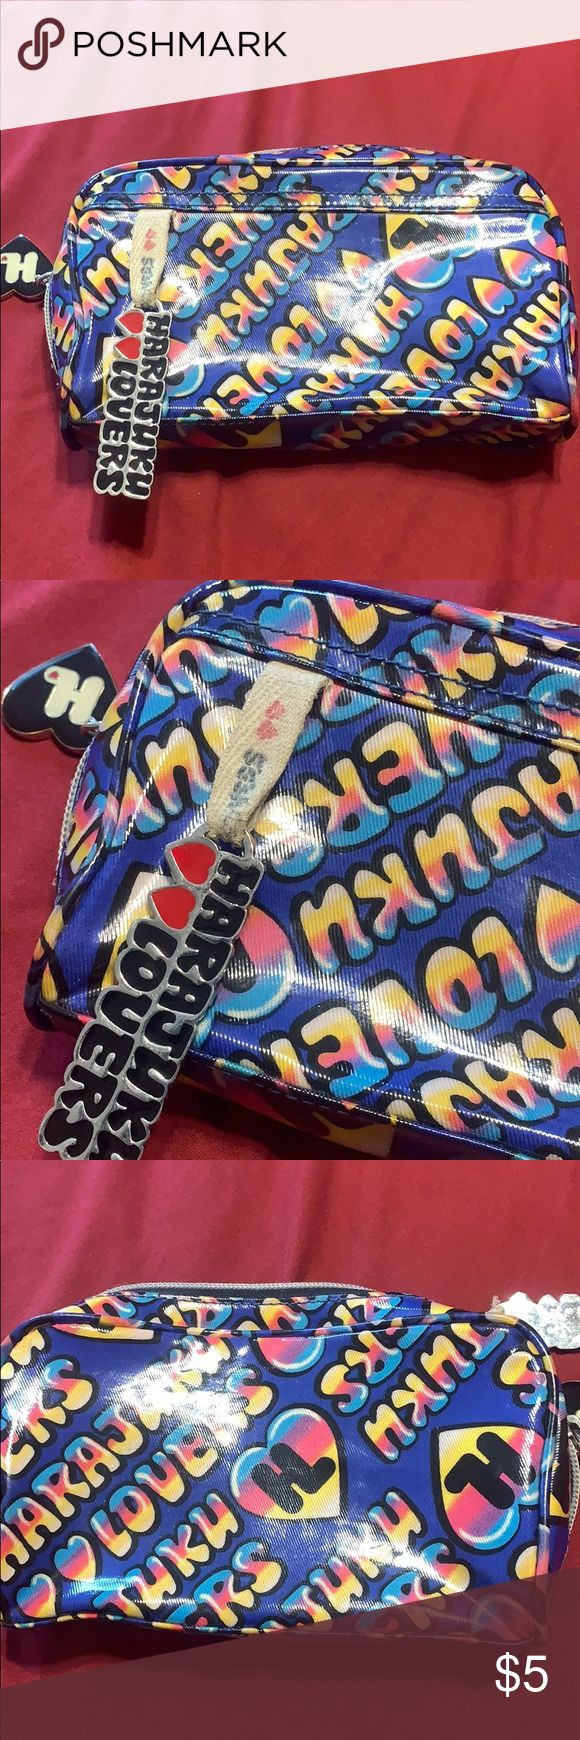 Harajuku lovers makeup bag Pre owned, outerwear is in good condition, inside is …